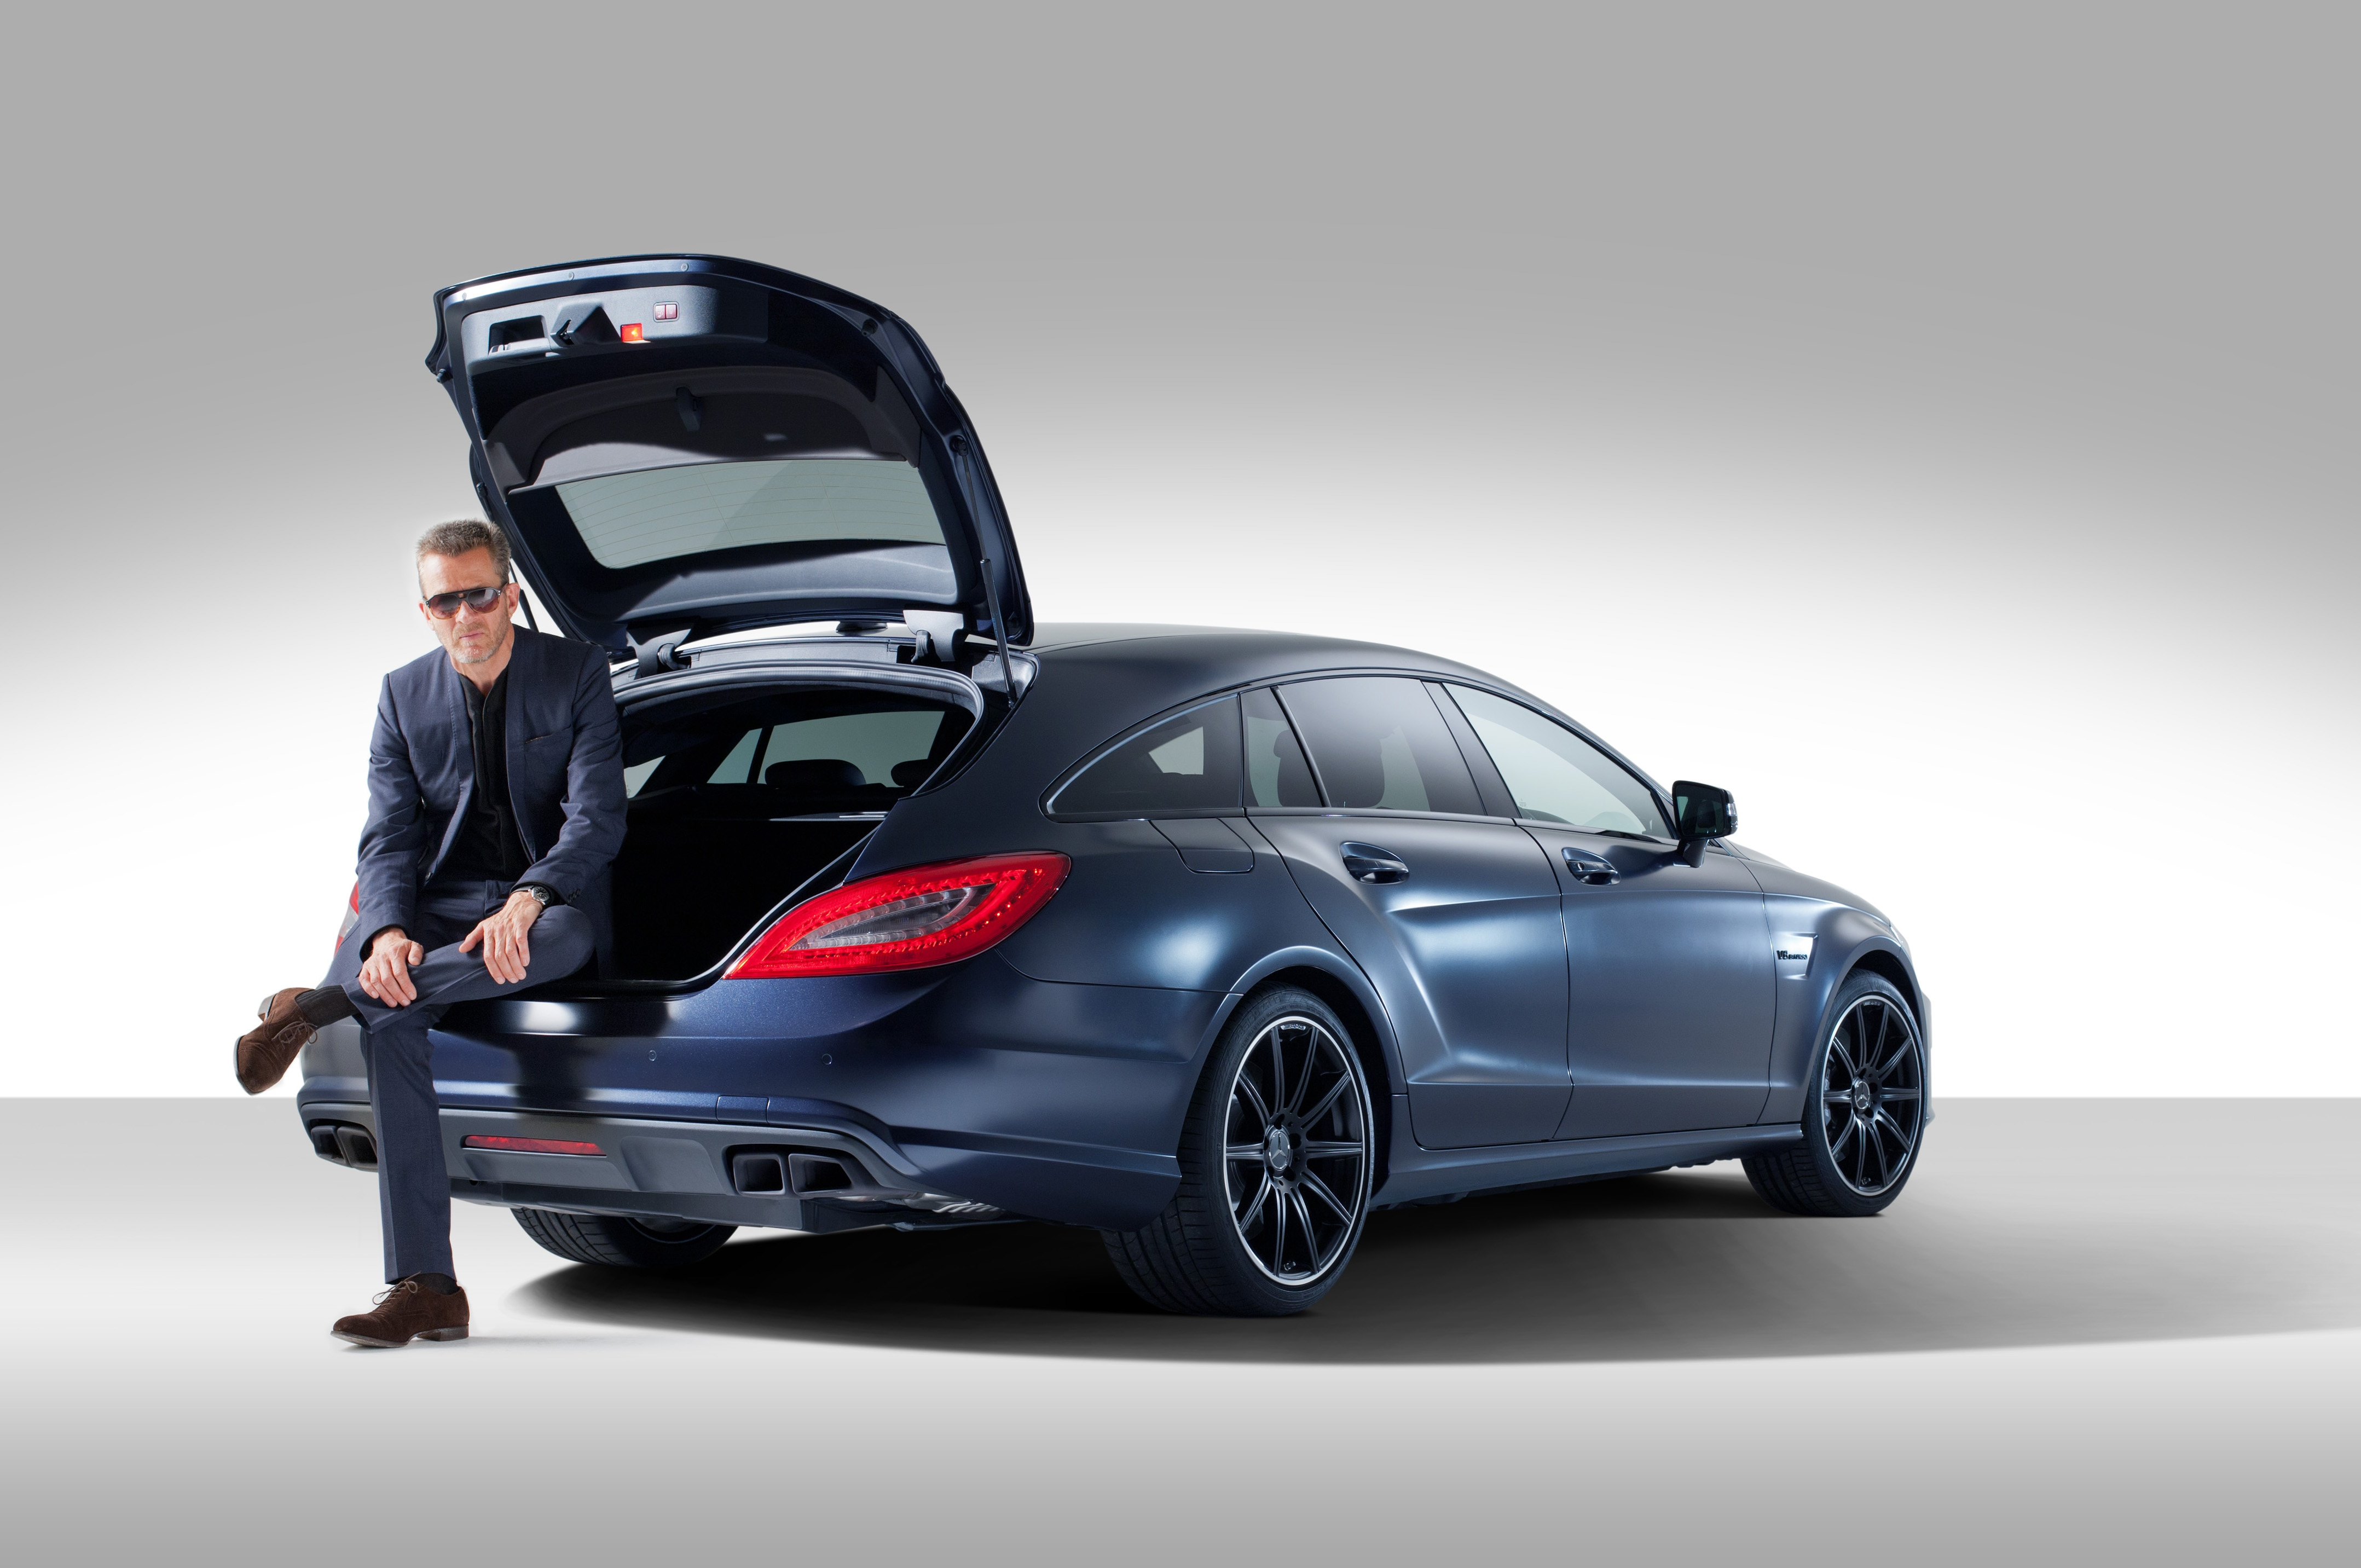 mercedes benz cls63 amg shooting break by spencer hart. Black Bedroom Furniture Sets. Home Design Ideas